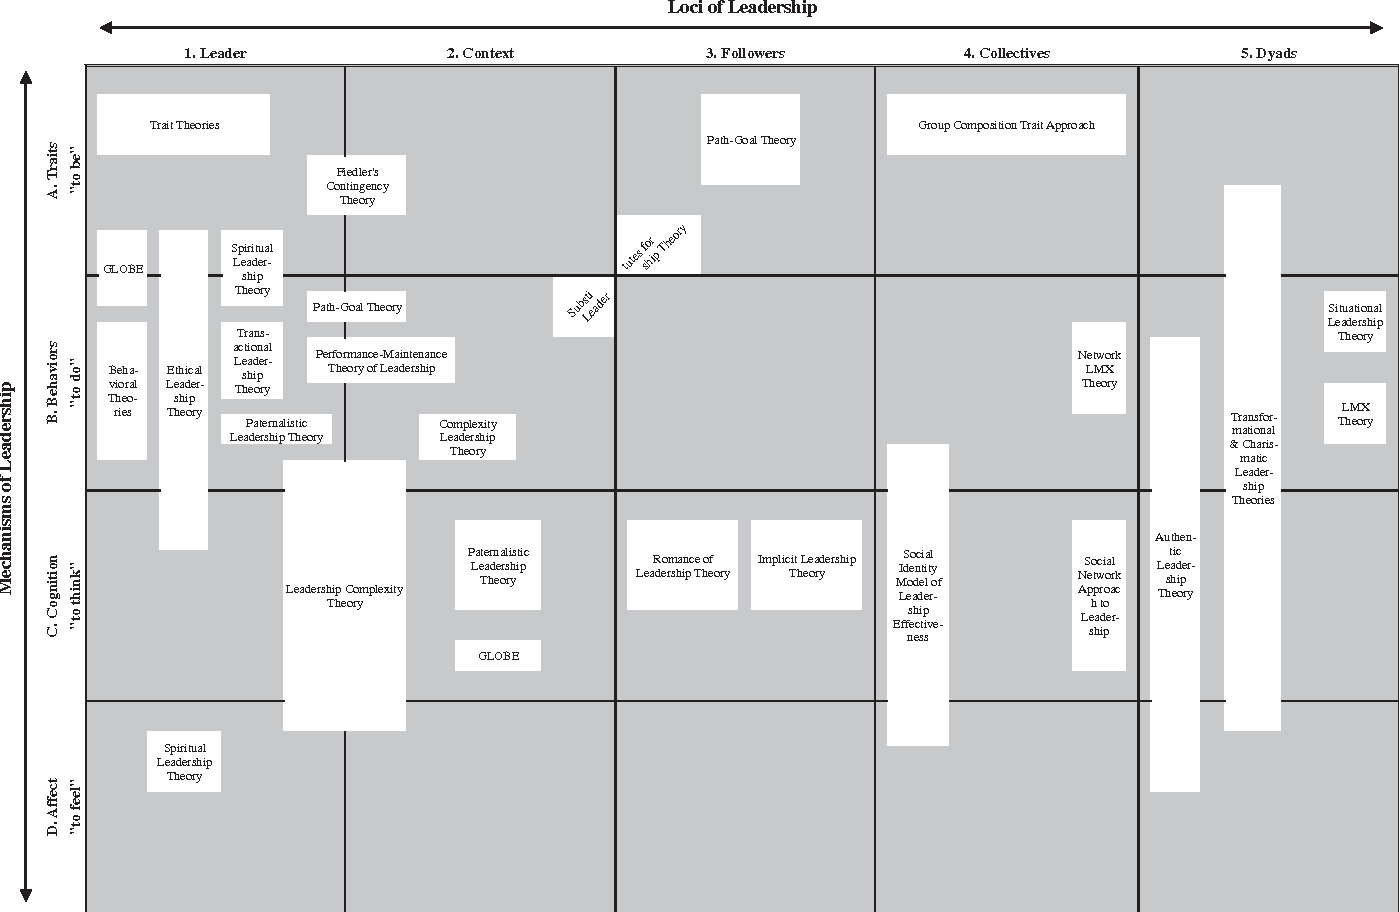 Figure 1 from The loci and mechanisms of leadership